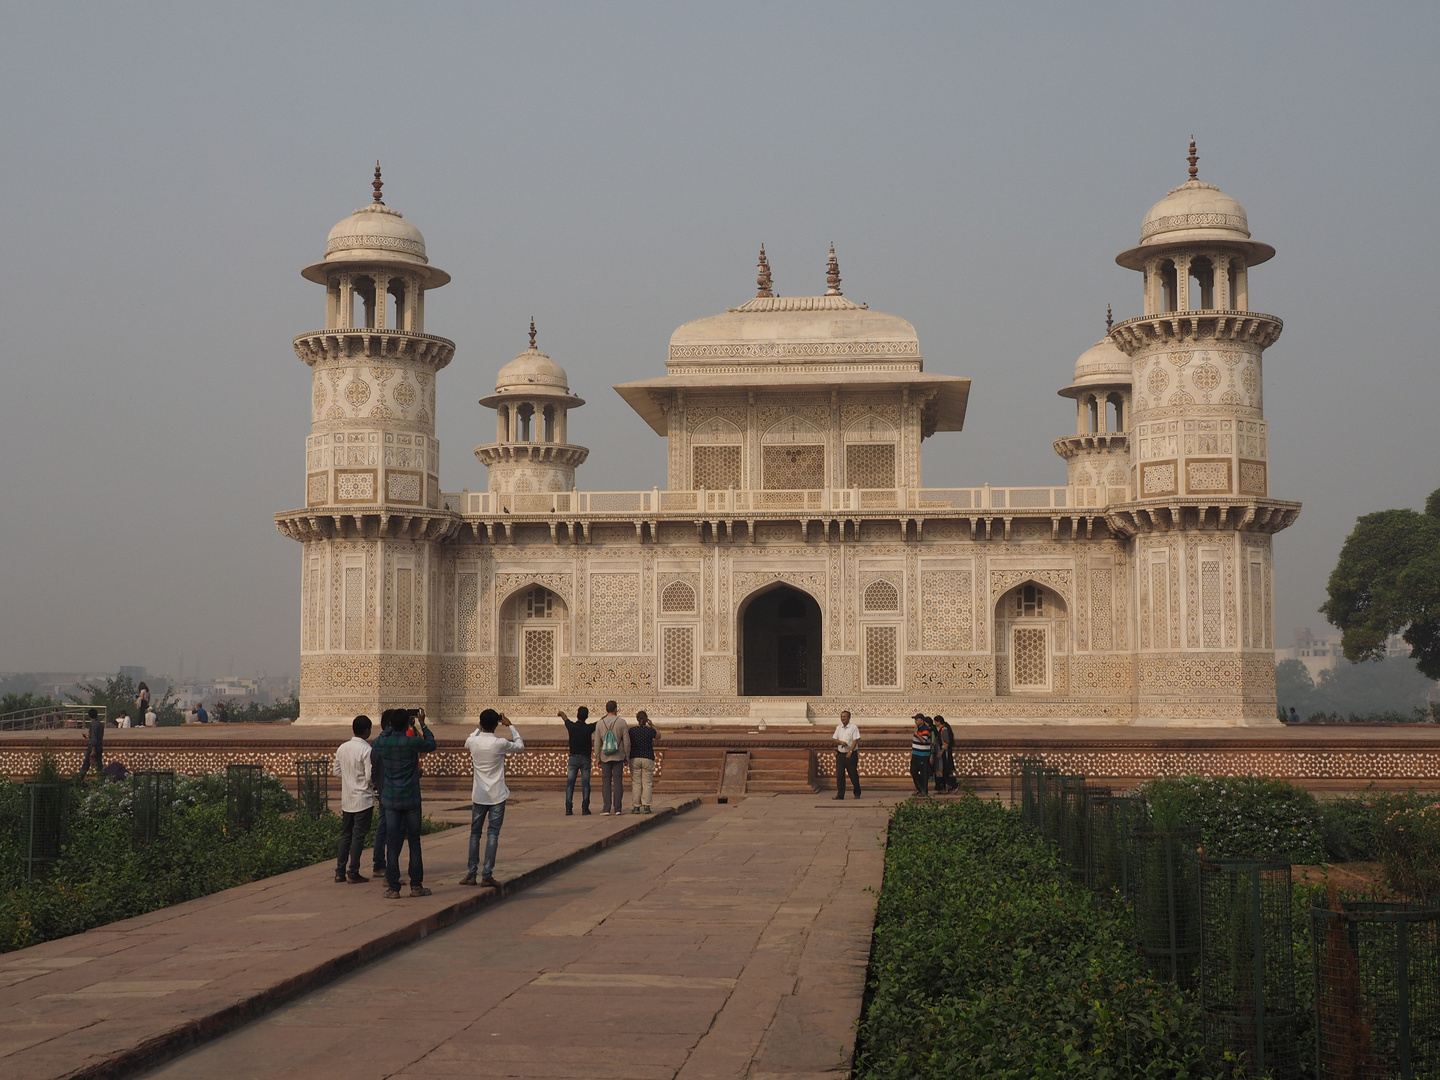 Itimad-ud-Mausoleum in Agra